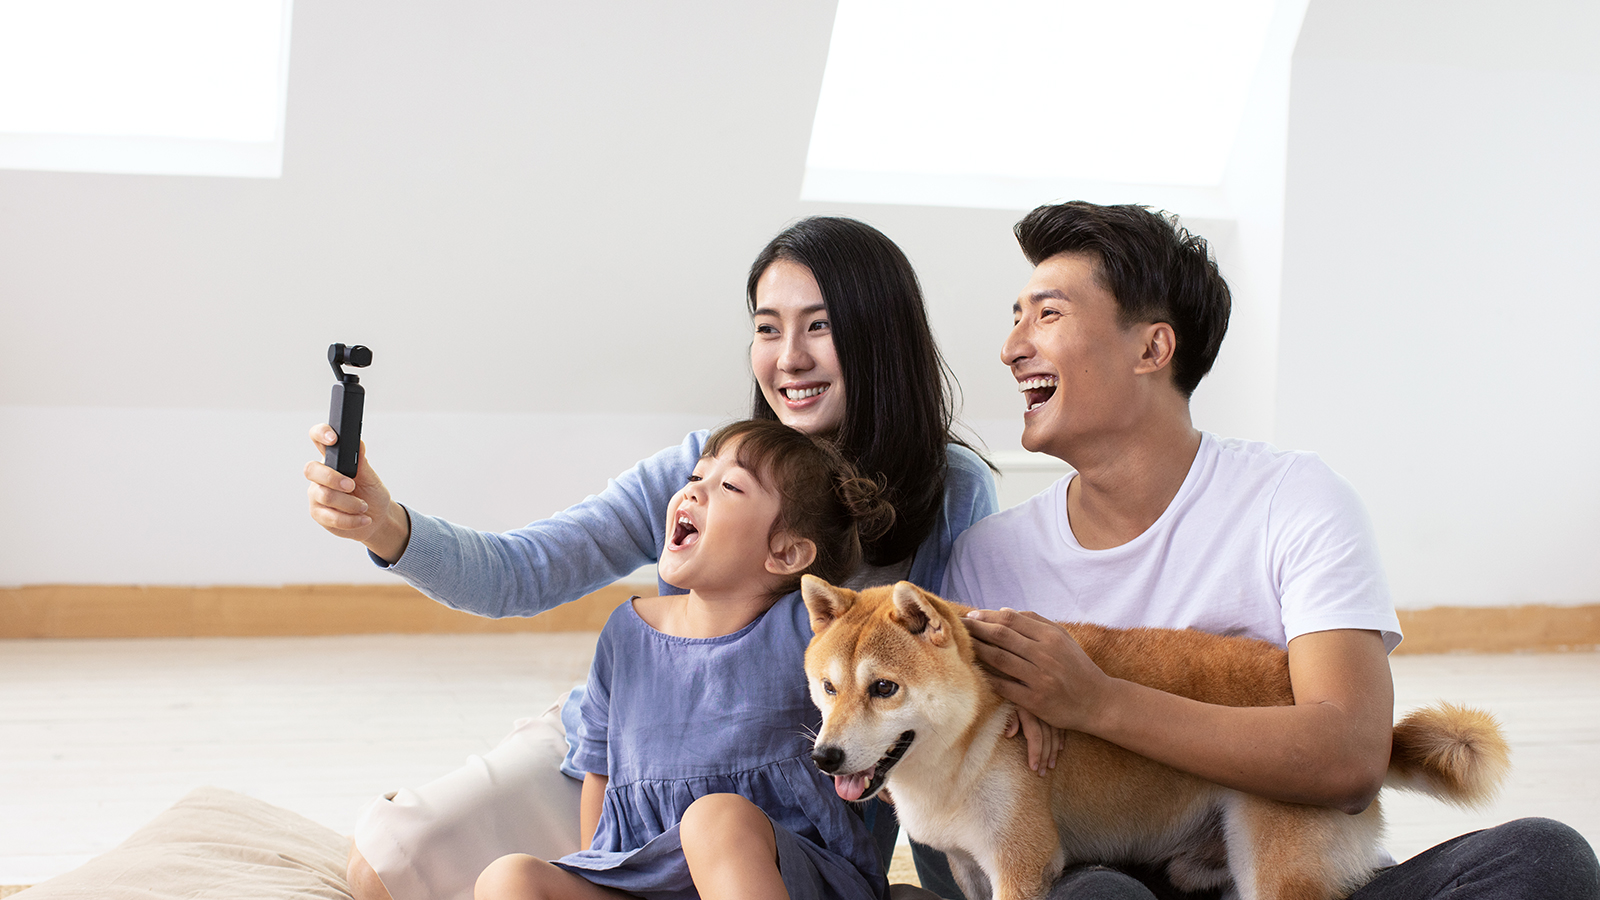 Family taking selfie with the DJI Osmo Pocket